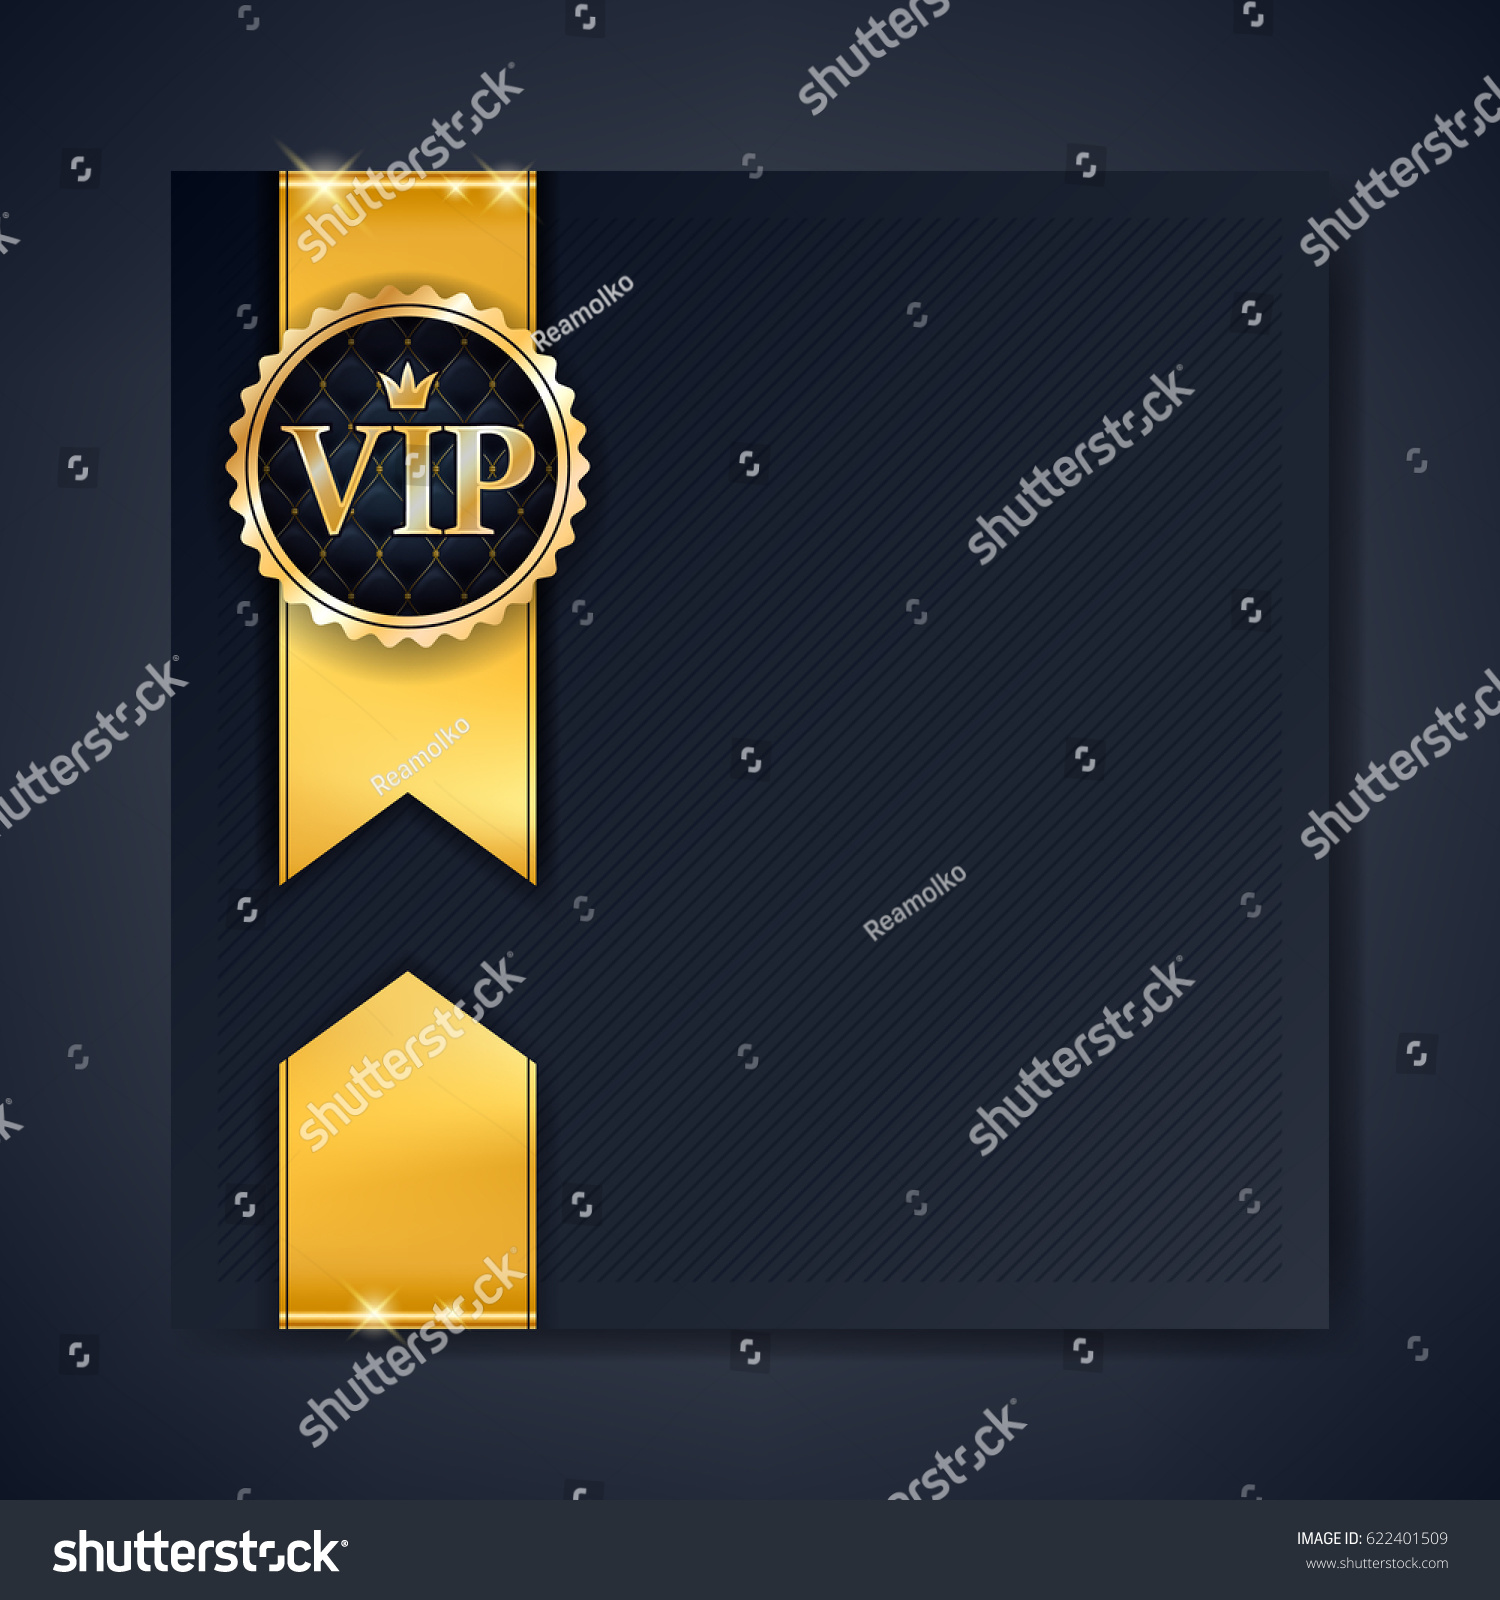 Vip club party premium invitation card stock vector 622401509 vip club party premium invitation card poster flyer black and golden design template with copy spiritdancerdesigns Images